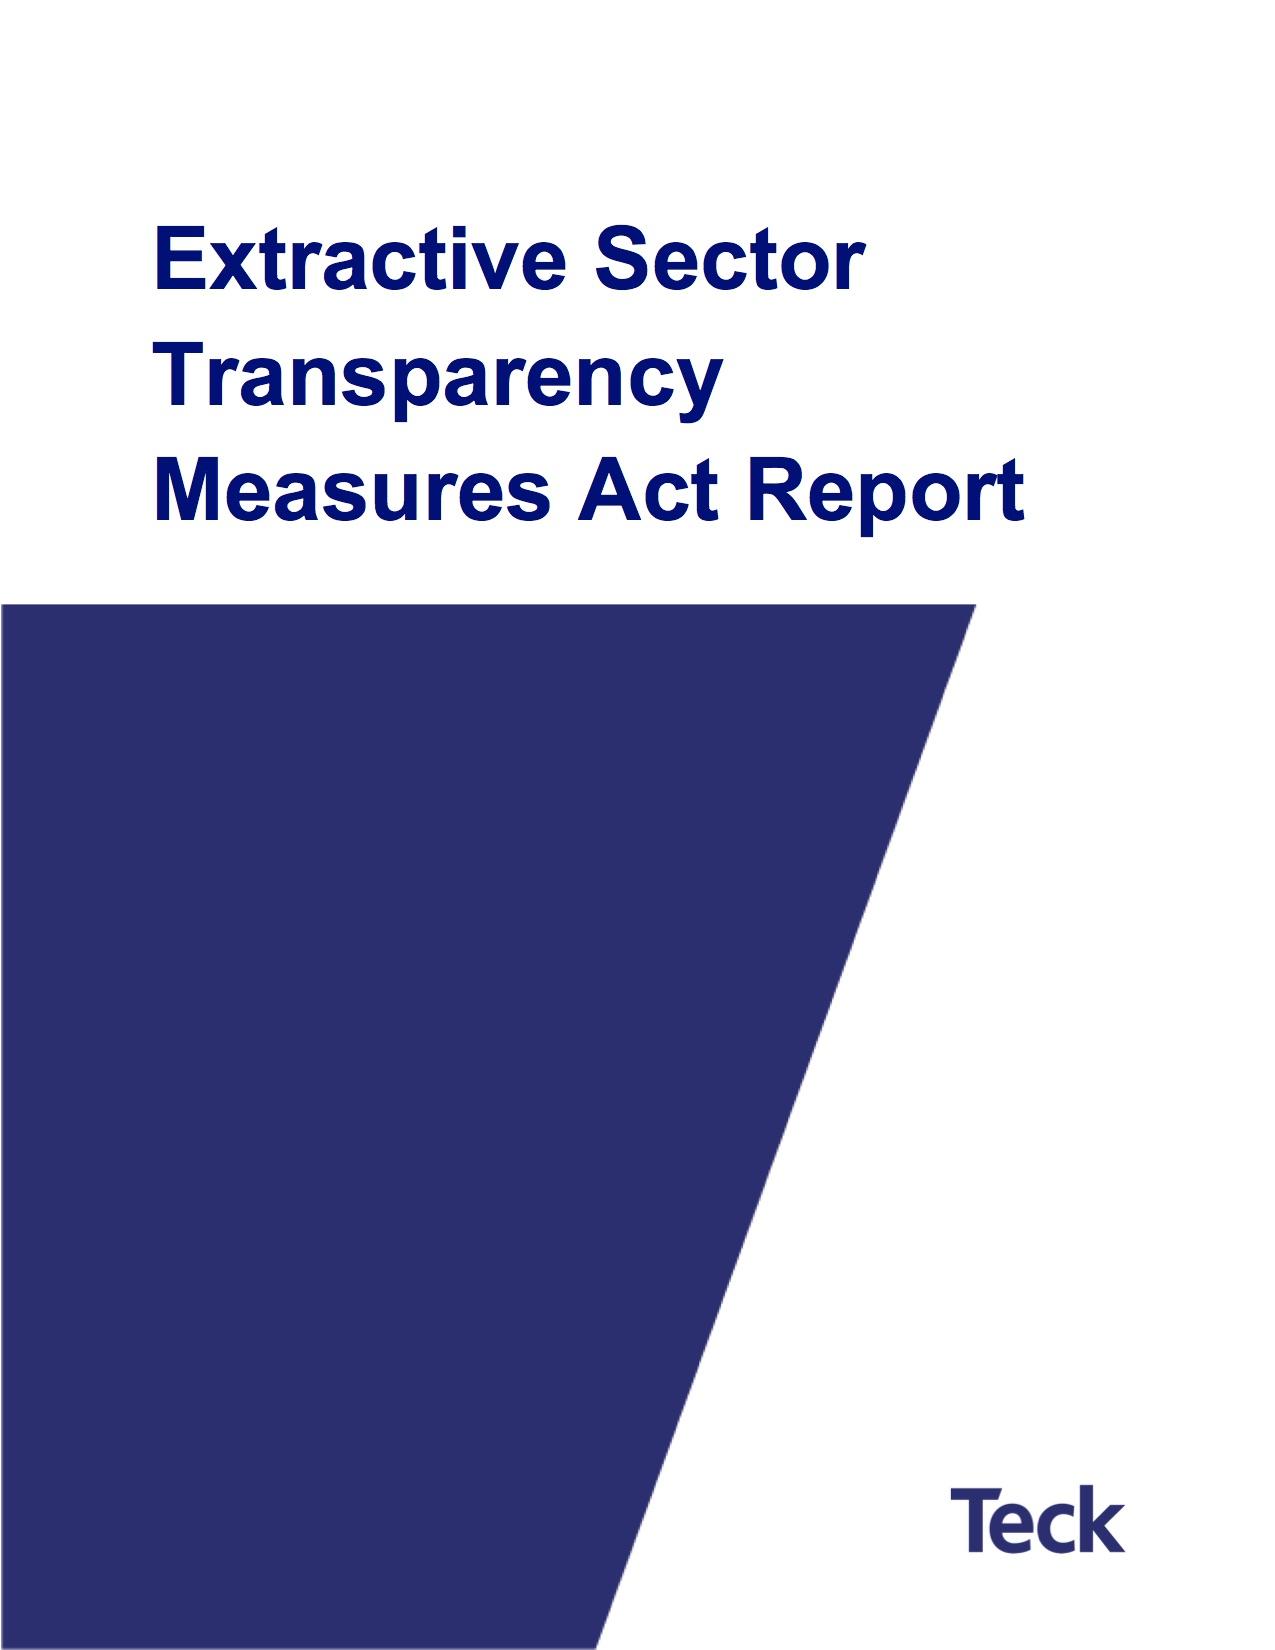 2018 Extractive Sector Transparency Measures Act Report